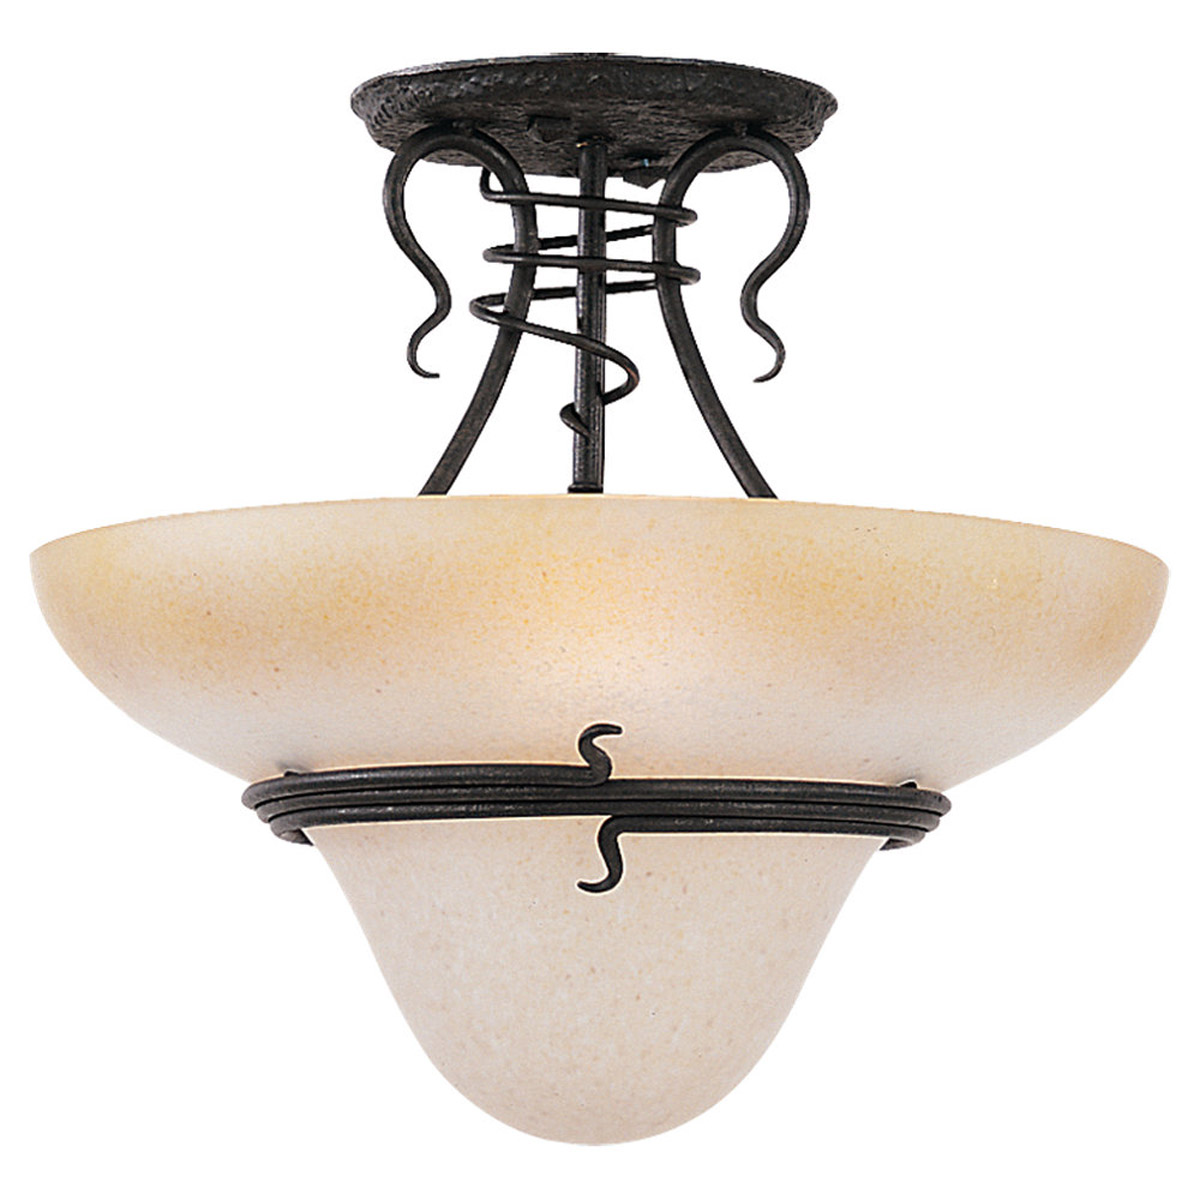 Sea Gull Lighting Saranac Lake 3 Light Semi Flush Mount in Forged Iron 7713-185 photo